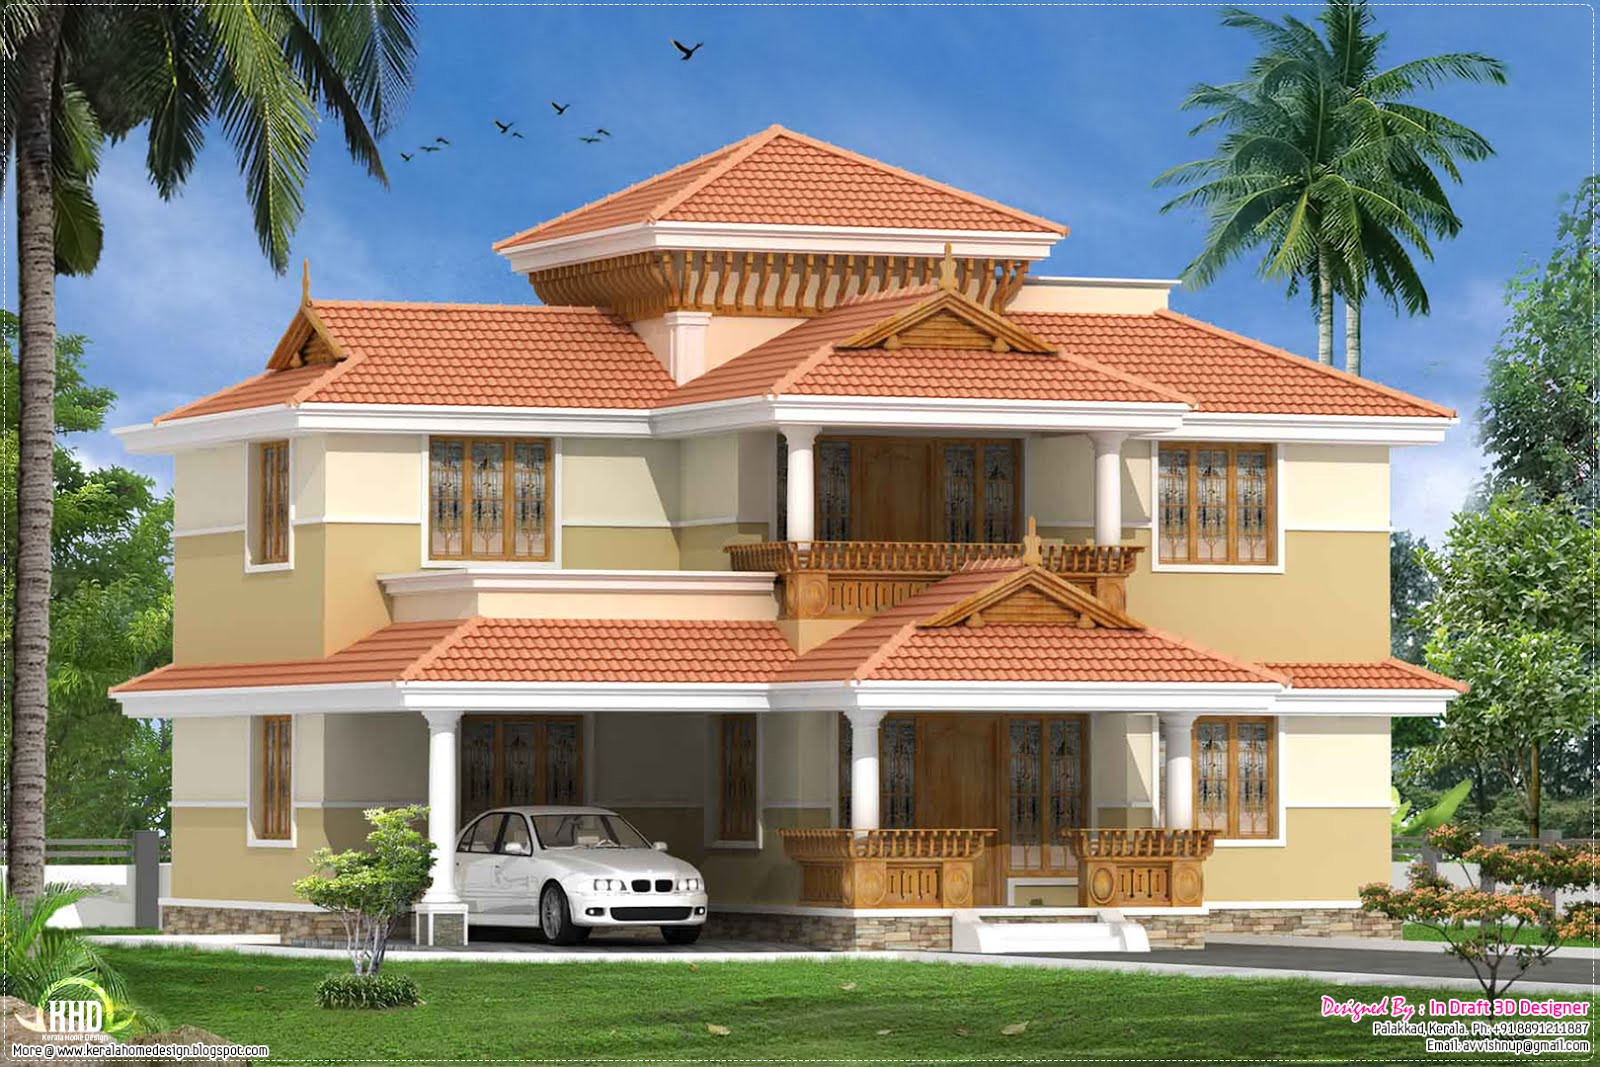 kerala-model-villa.jpg